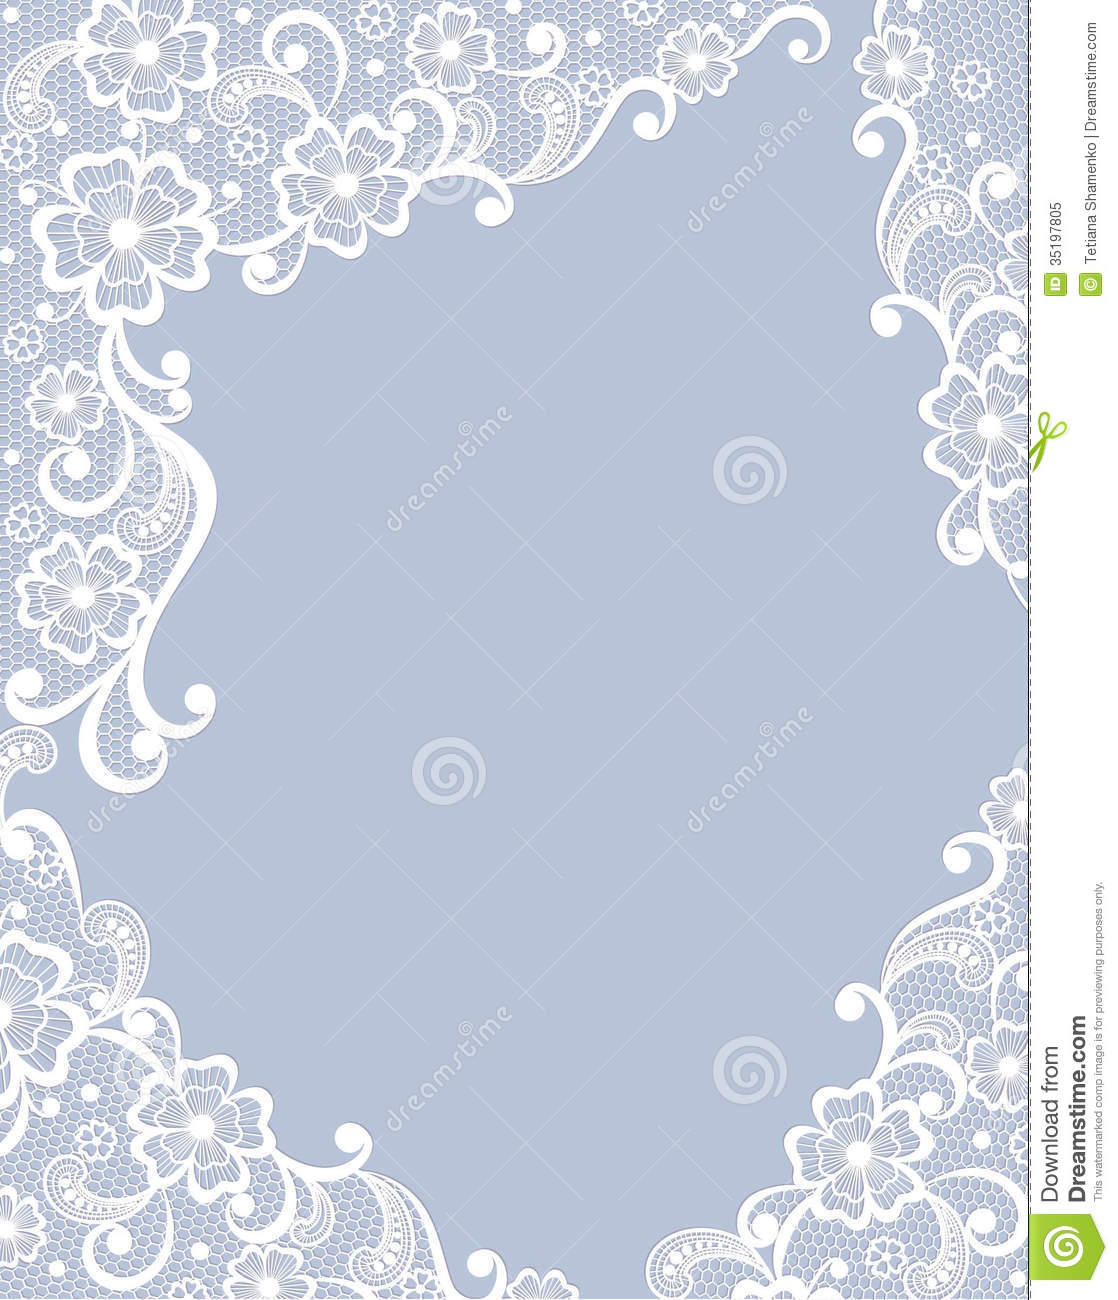 Template Greeting Card Royalty Free Stock Image: Template Frame Design For Card. Royalty Free Stock Photo